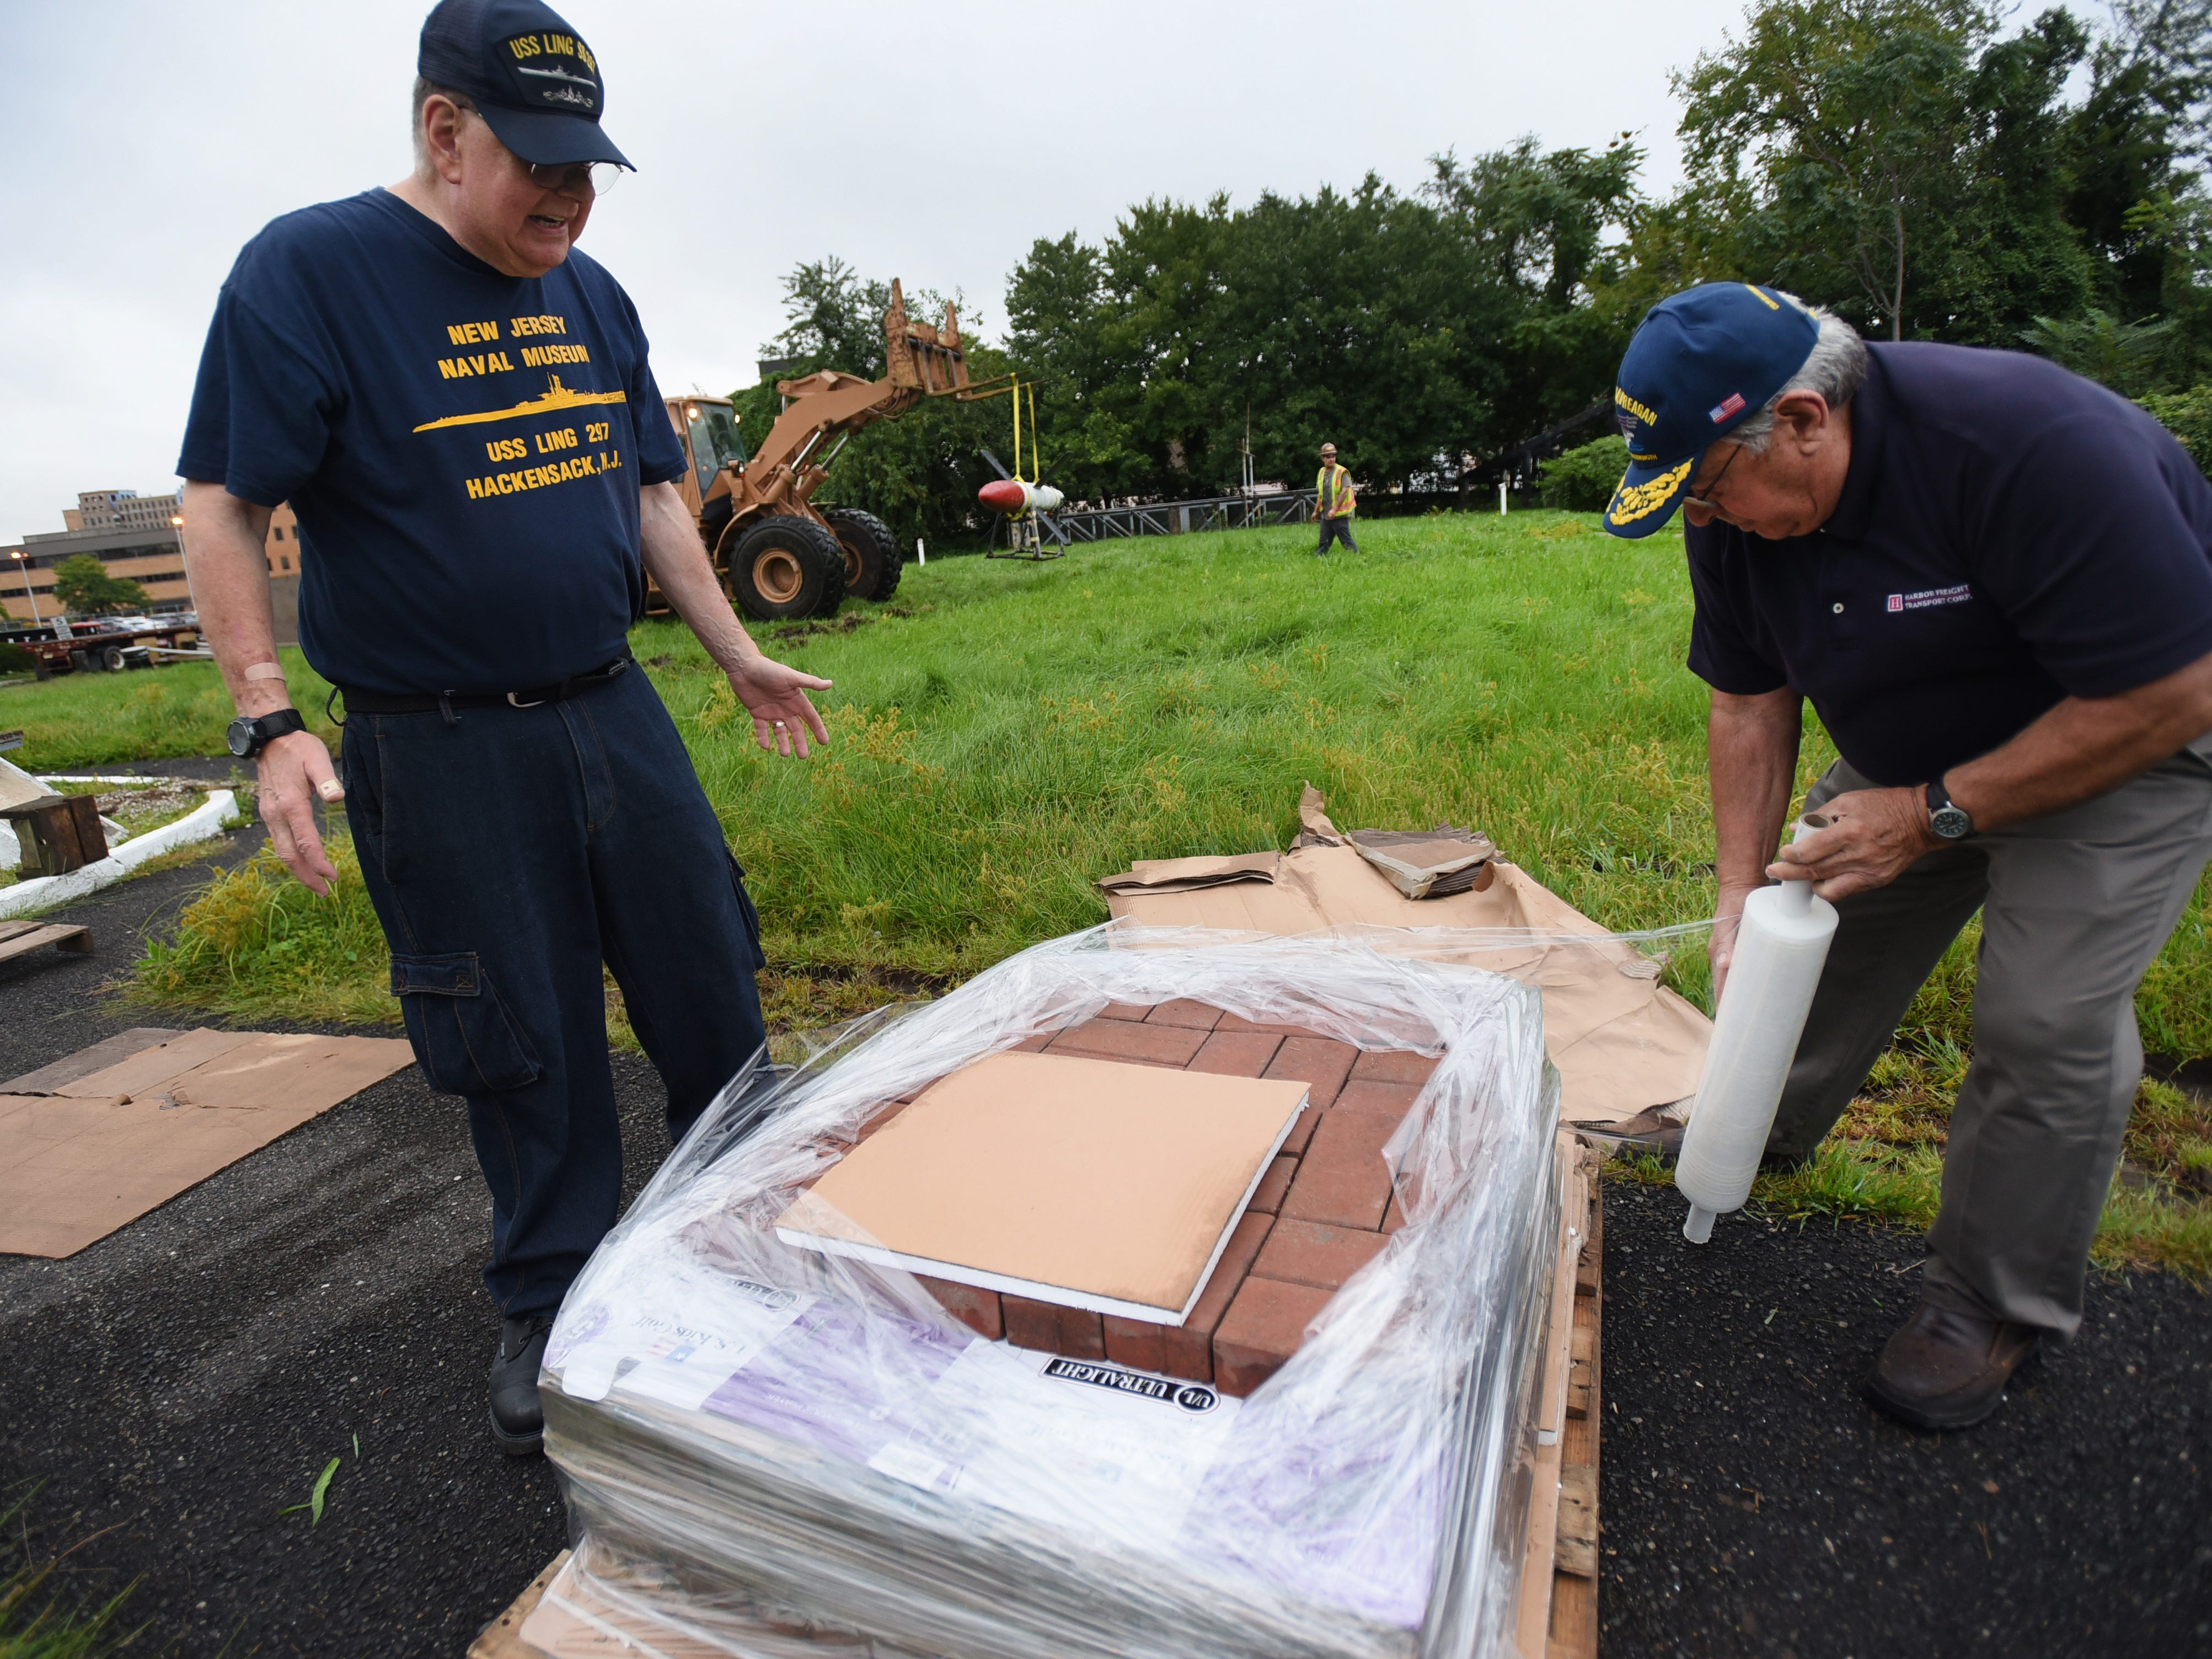 Joseph N. Mattio (R) from Harbor Freight Transport Corp. wraps WWII Memorial for the 52 US Submarines lost in WWII to be removed as Les Altschuler (L) Vice President of NJ Naval Museum and Director of North East Region of USSVI, looks on at the site of the NJ Naval Museum in Hackensack on 09/12/18.  The 1945 USS Ling SS297, 312 foot long submarine remains at the site.